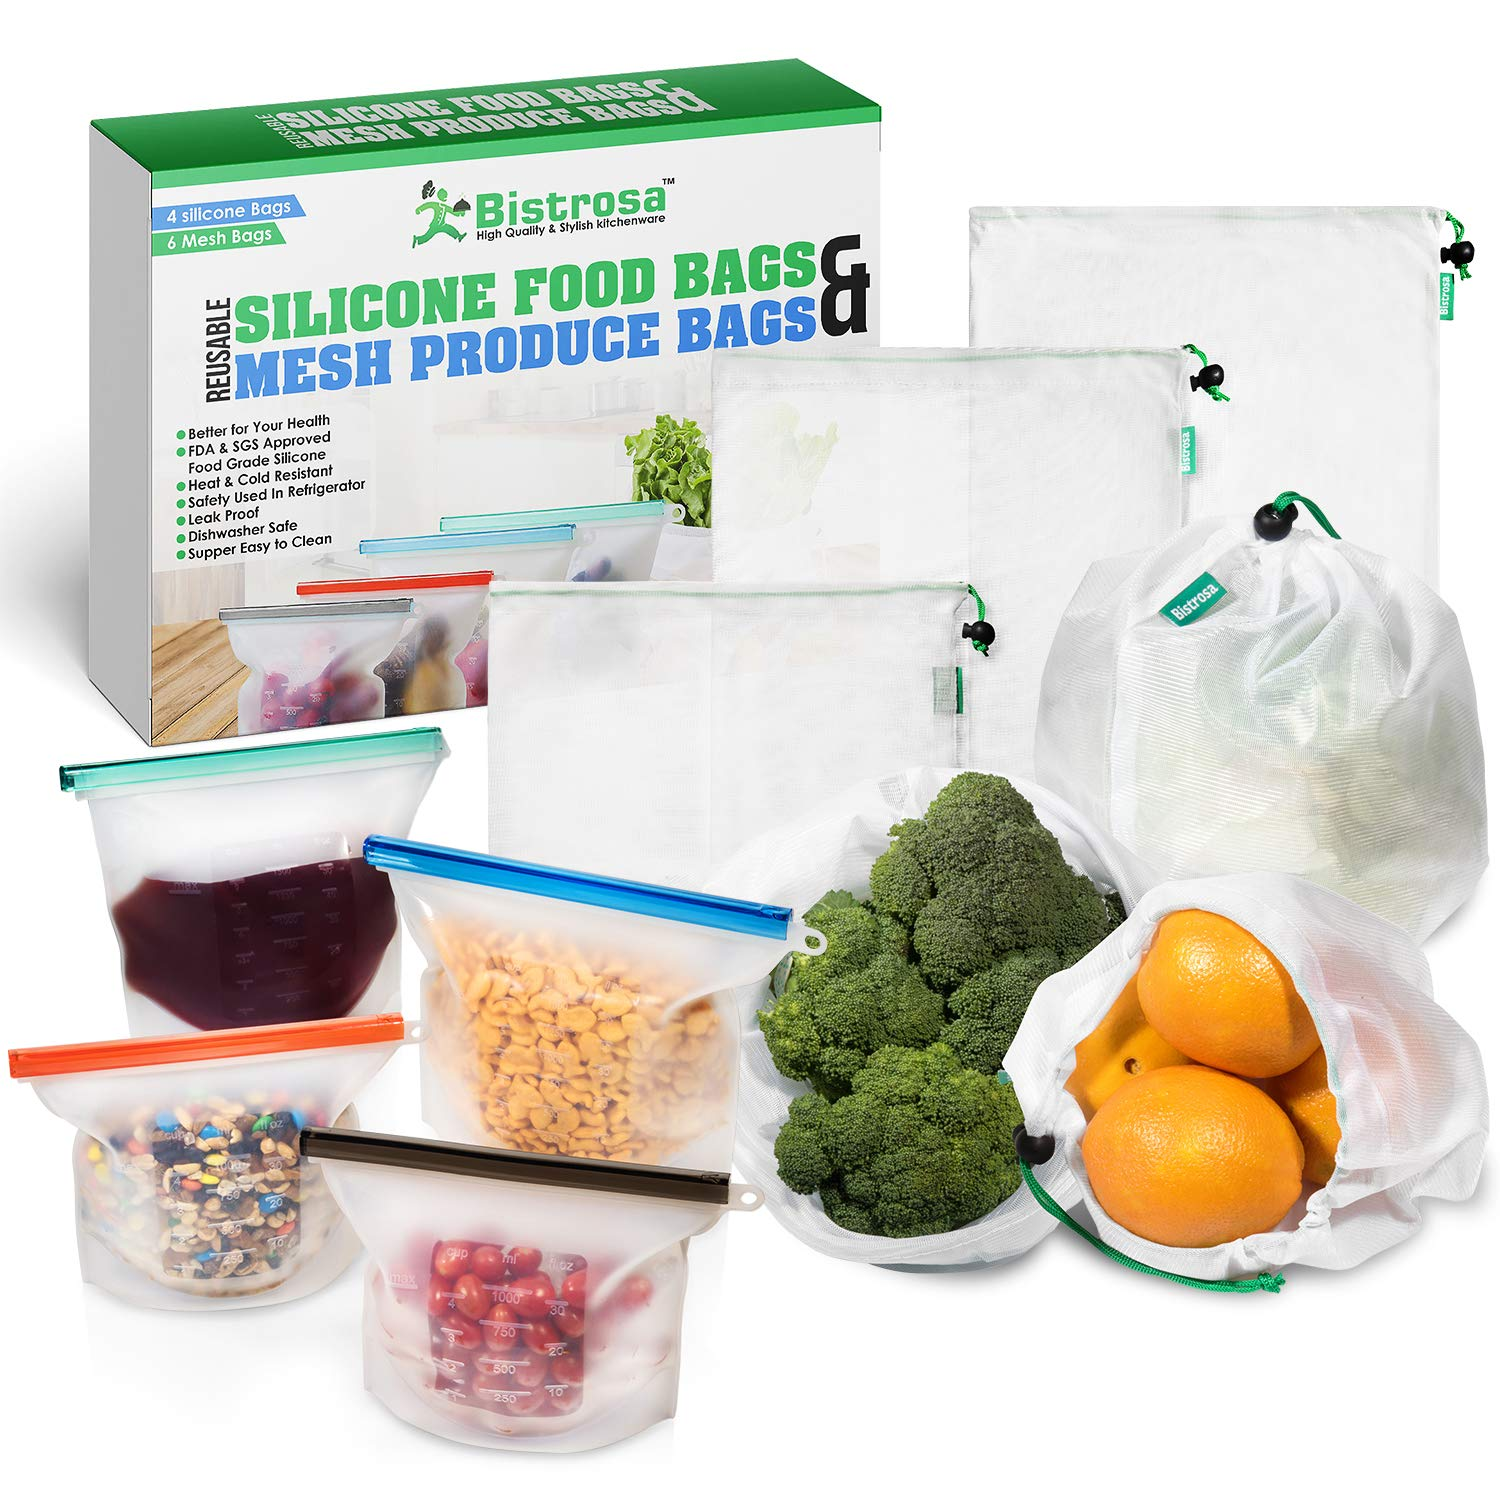 Reusable Silicone Food Bag (4,2-Large,2 Small) With Mesh Produce Bags (6) | Eco Friendly Food Storage, Sous Vide | Meal Prep | Freezer Containers Airtight Lunch Bags preserving cooking Kitchen Saver